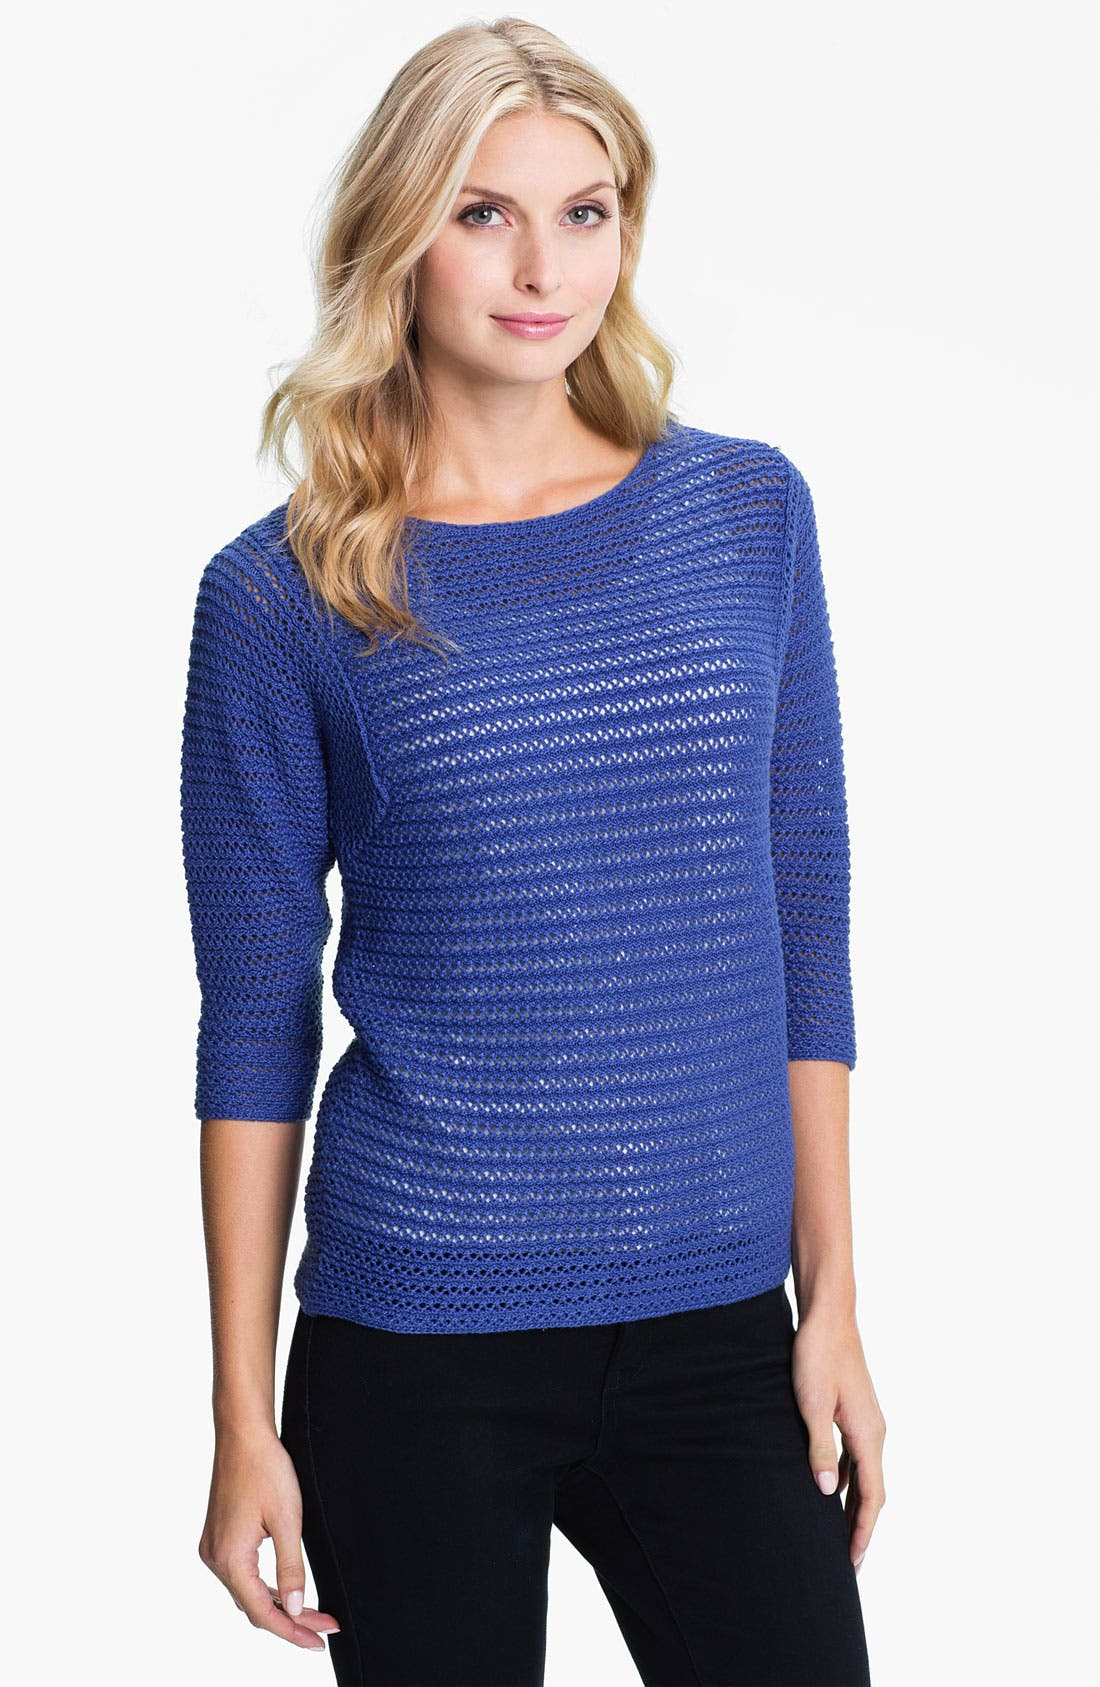 Main Image - Holistia 'Eco' Open Stitch Sweater